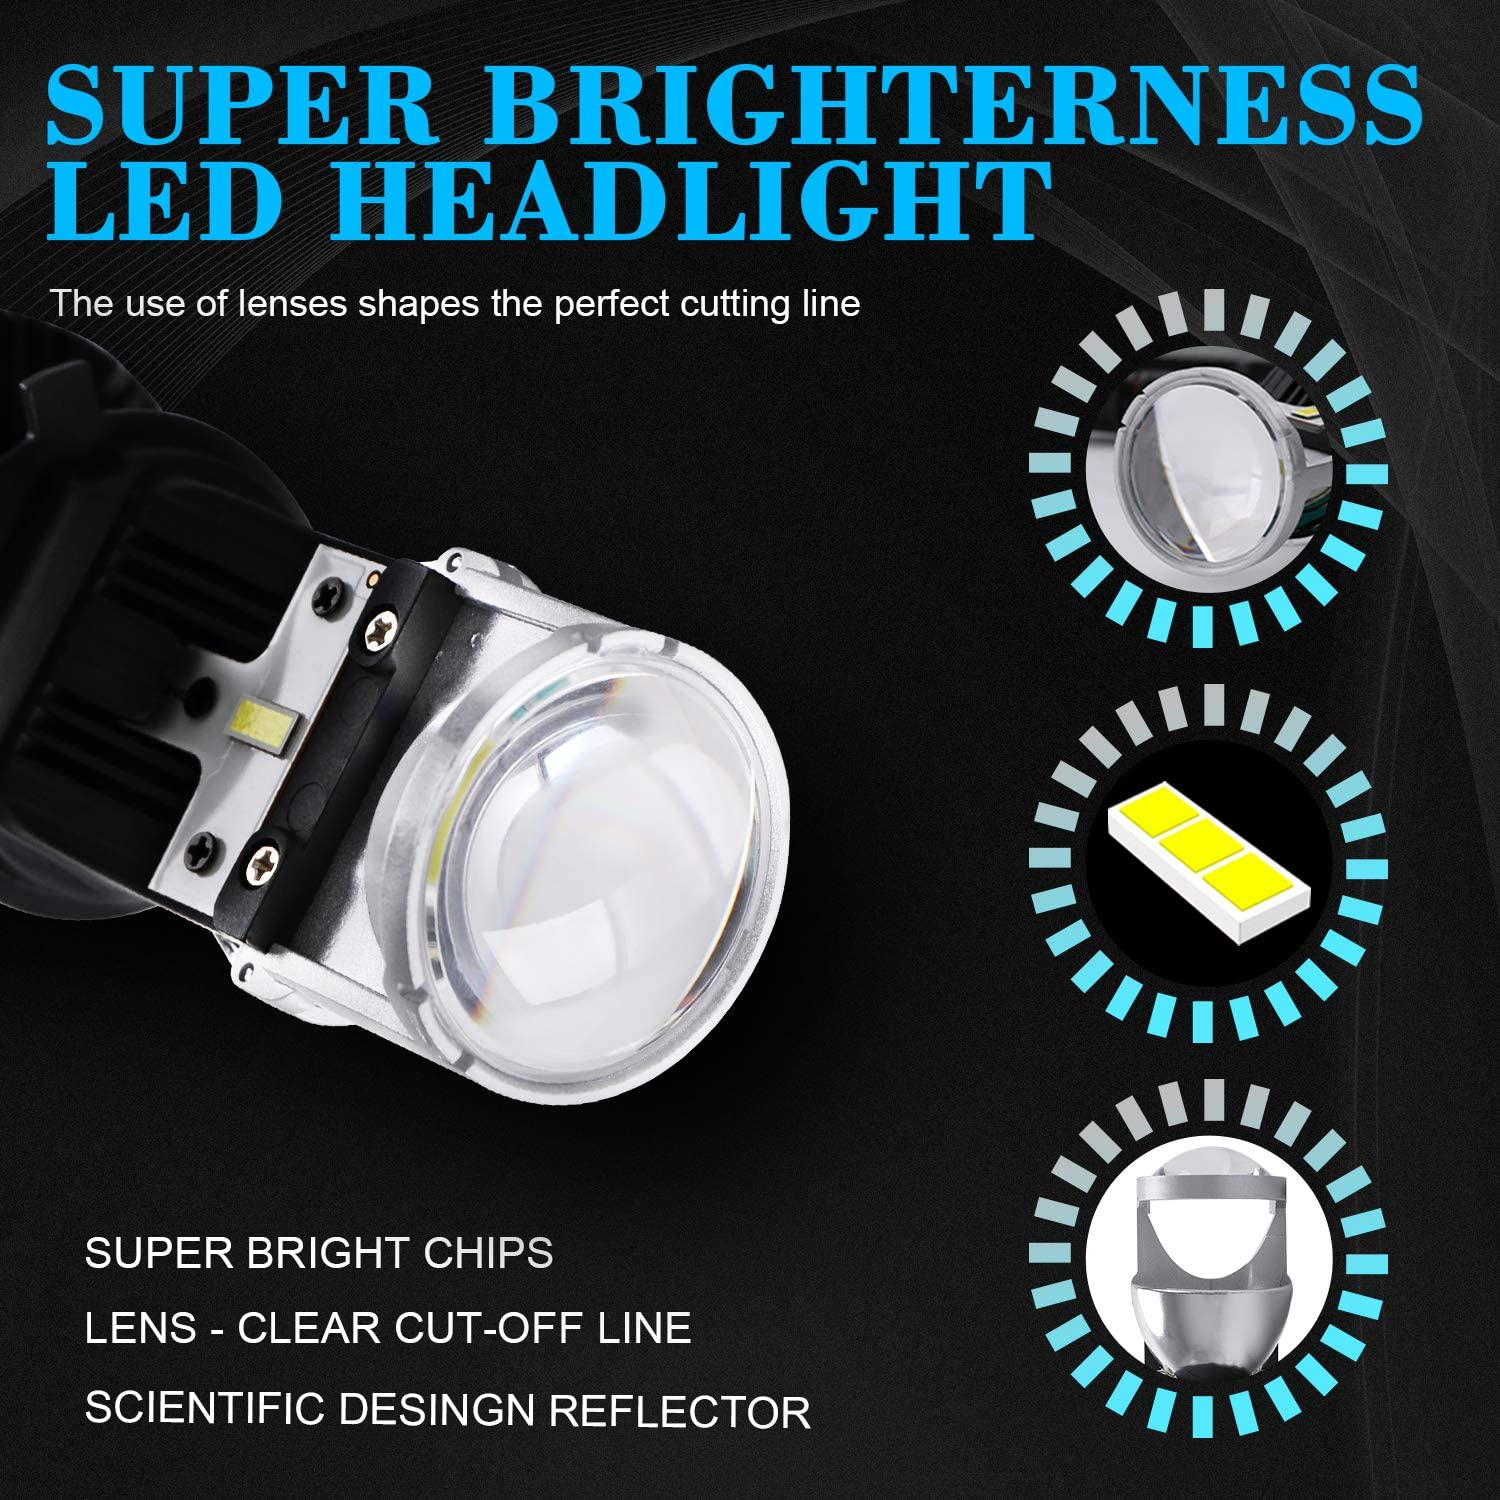 CO LIGHT Pair H4//9003//HB2 LED Headlight Bulbs with Mini Projector Lens Canbus Hi//Lo Beam Solve Astigmatism Problem 10000lumens LED Headlight Conversion Kit for Car Motorcycle Plug Play